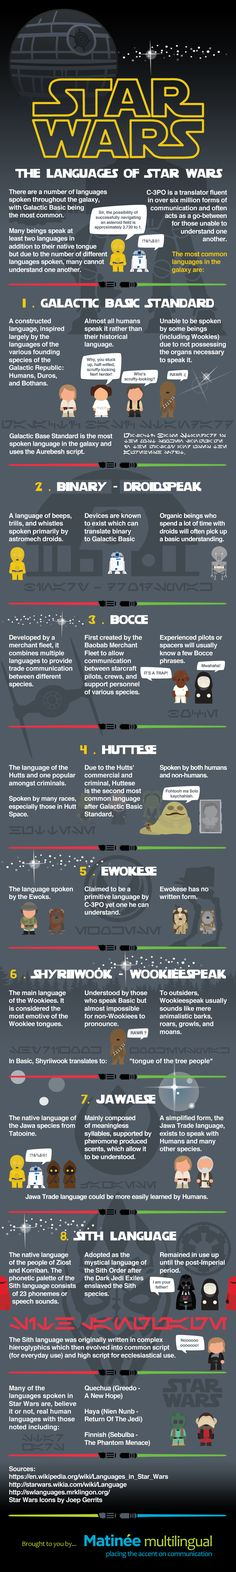 The Languages Of Star Wars #infographic